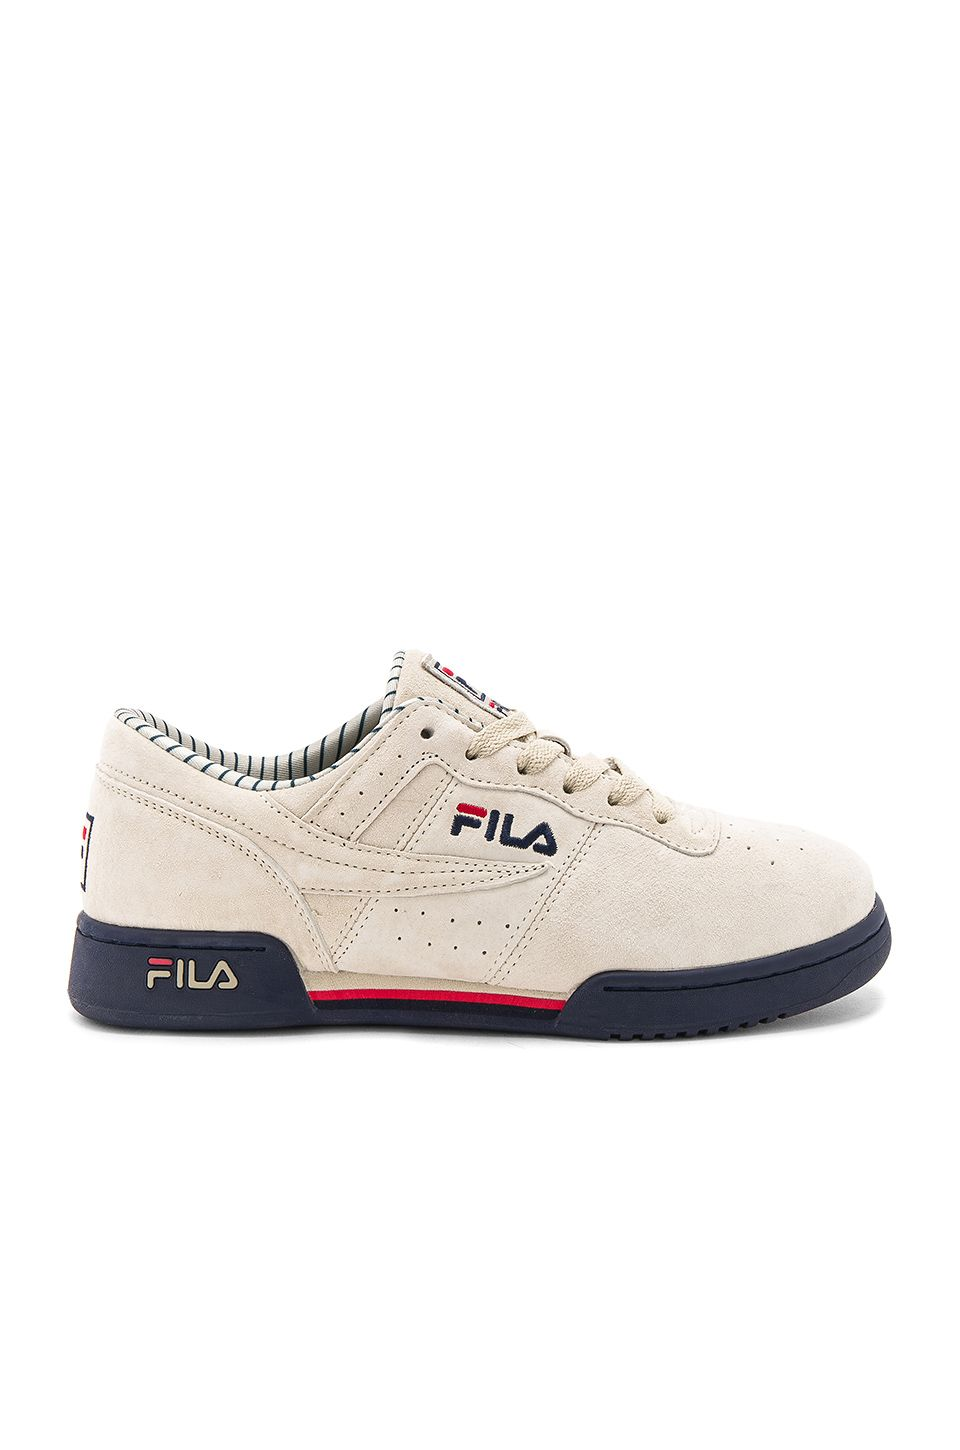 8d575aa3 Fila Original Fitness PS in Cream & Navy & Red | cool shoes in 2019 ...